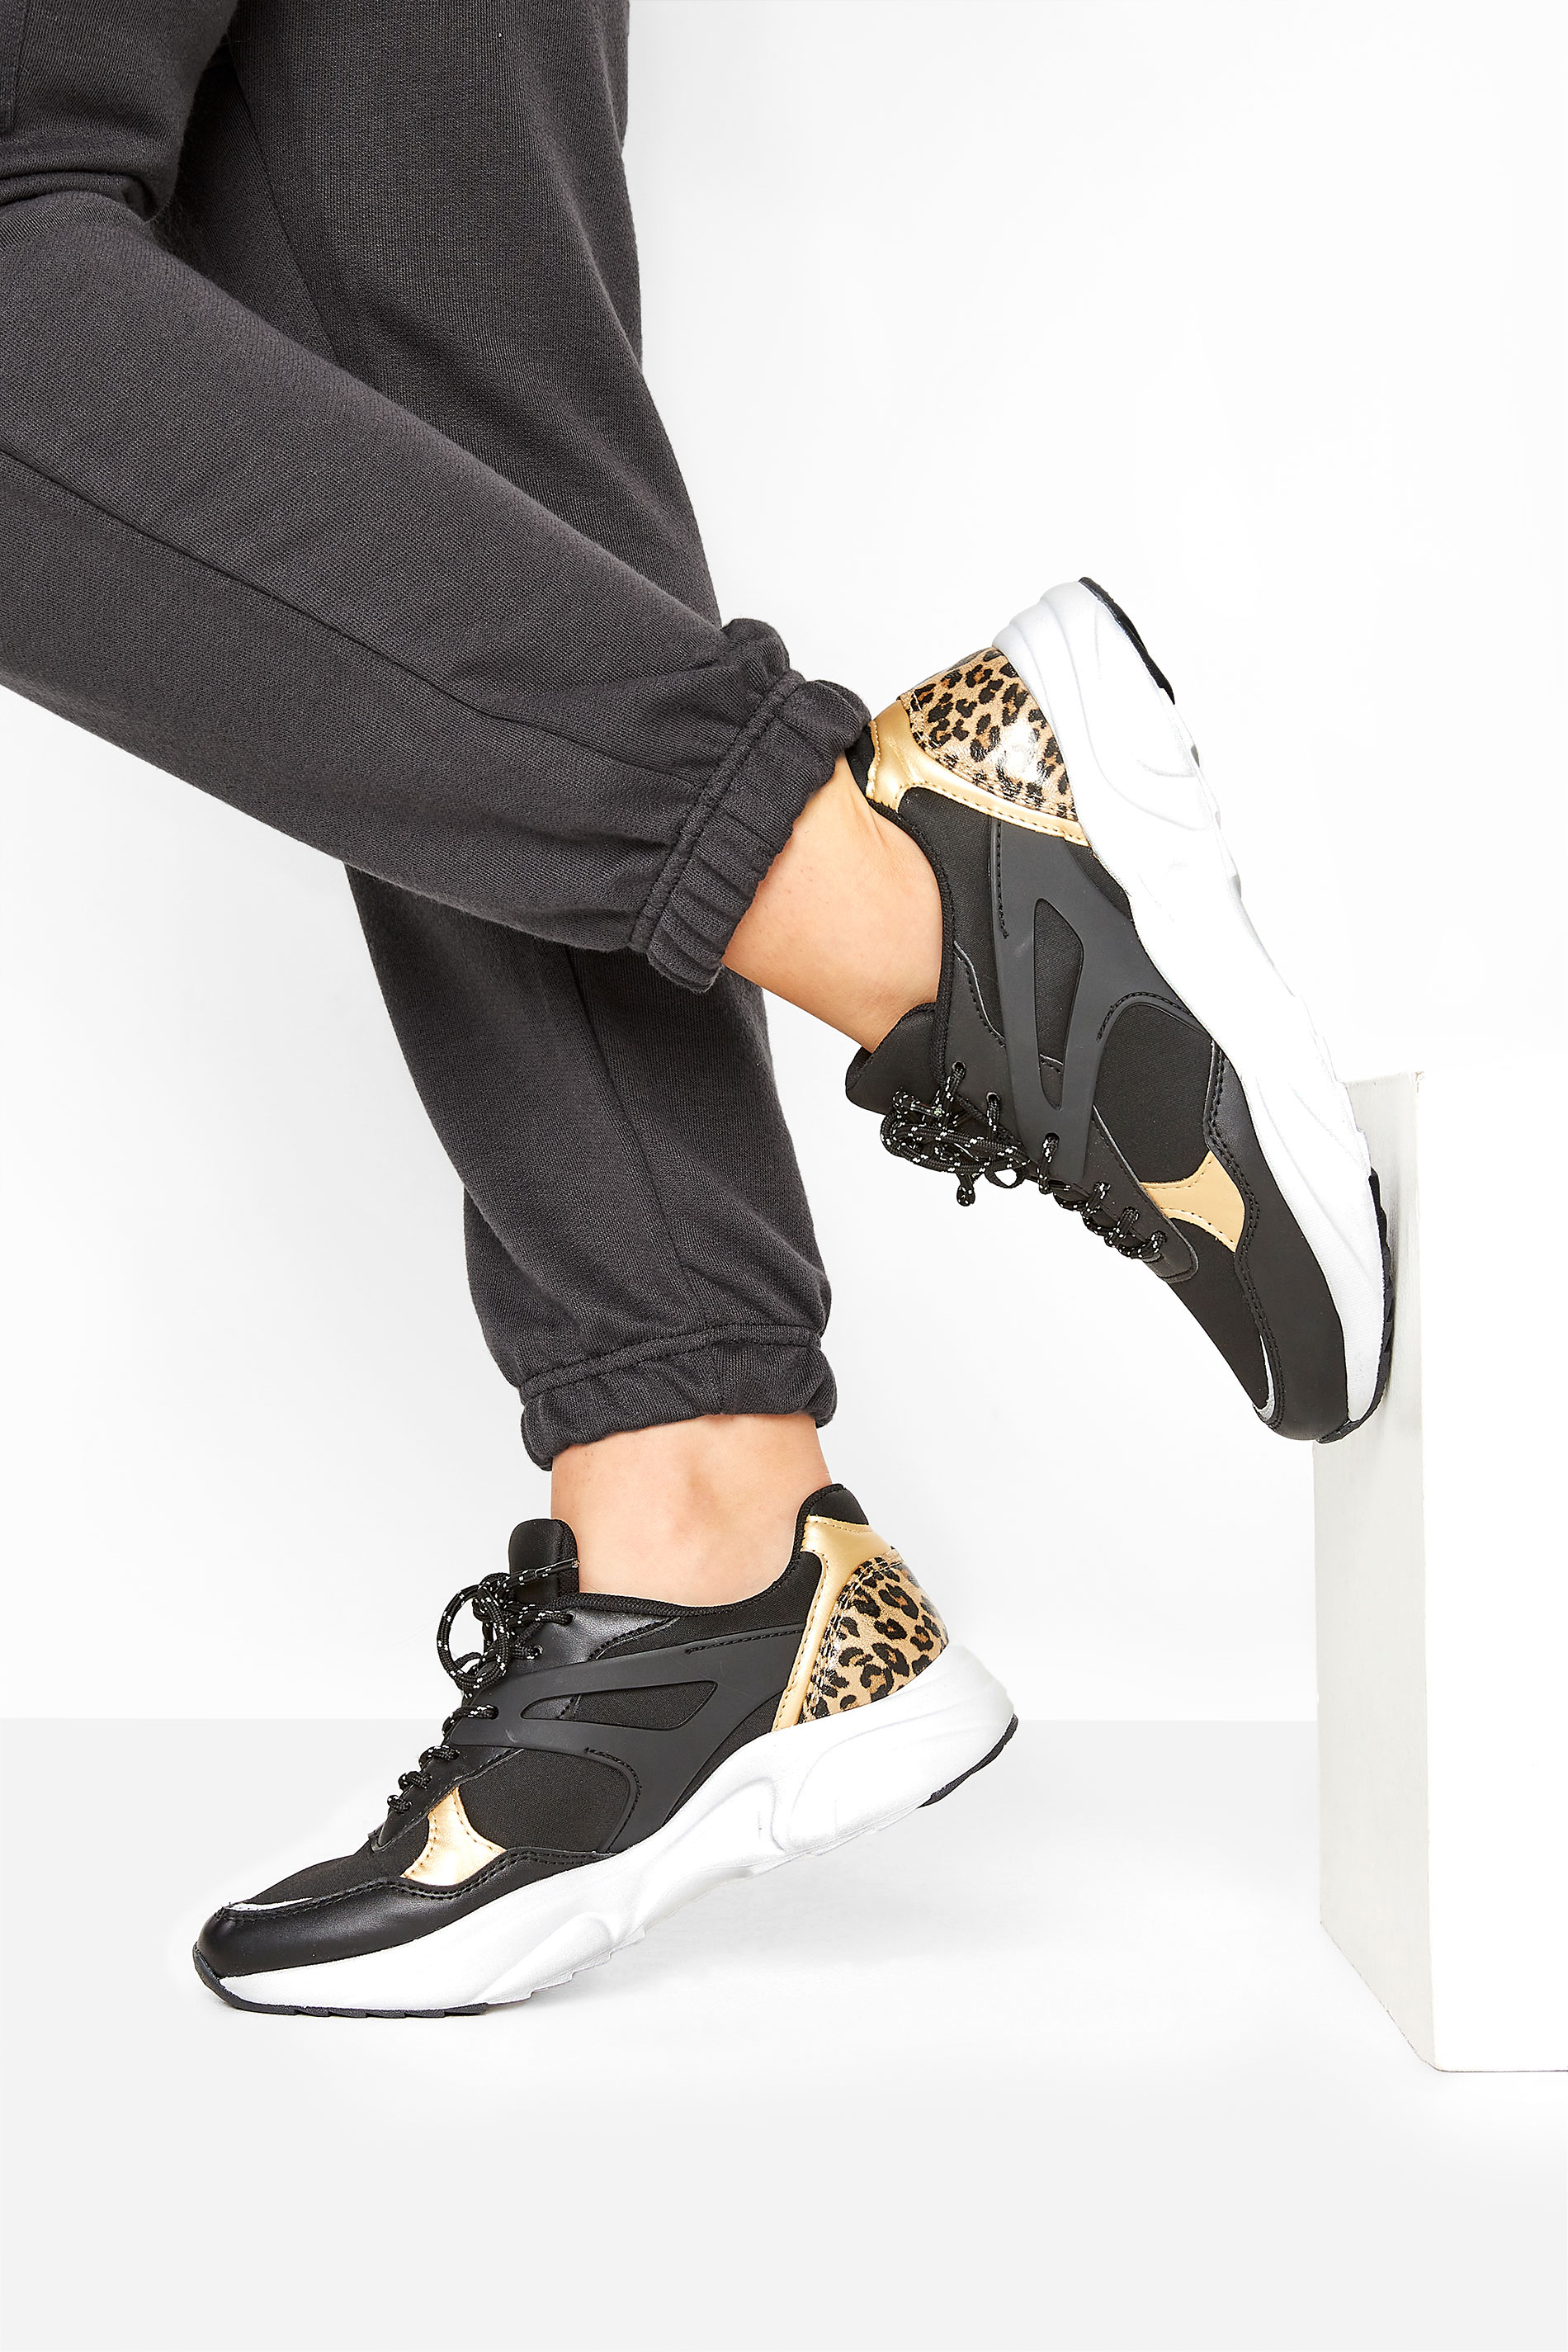 LIMITED COLLECTION Black Leopard Print Contrast Trainers In Wide Fit